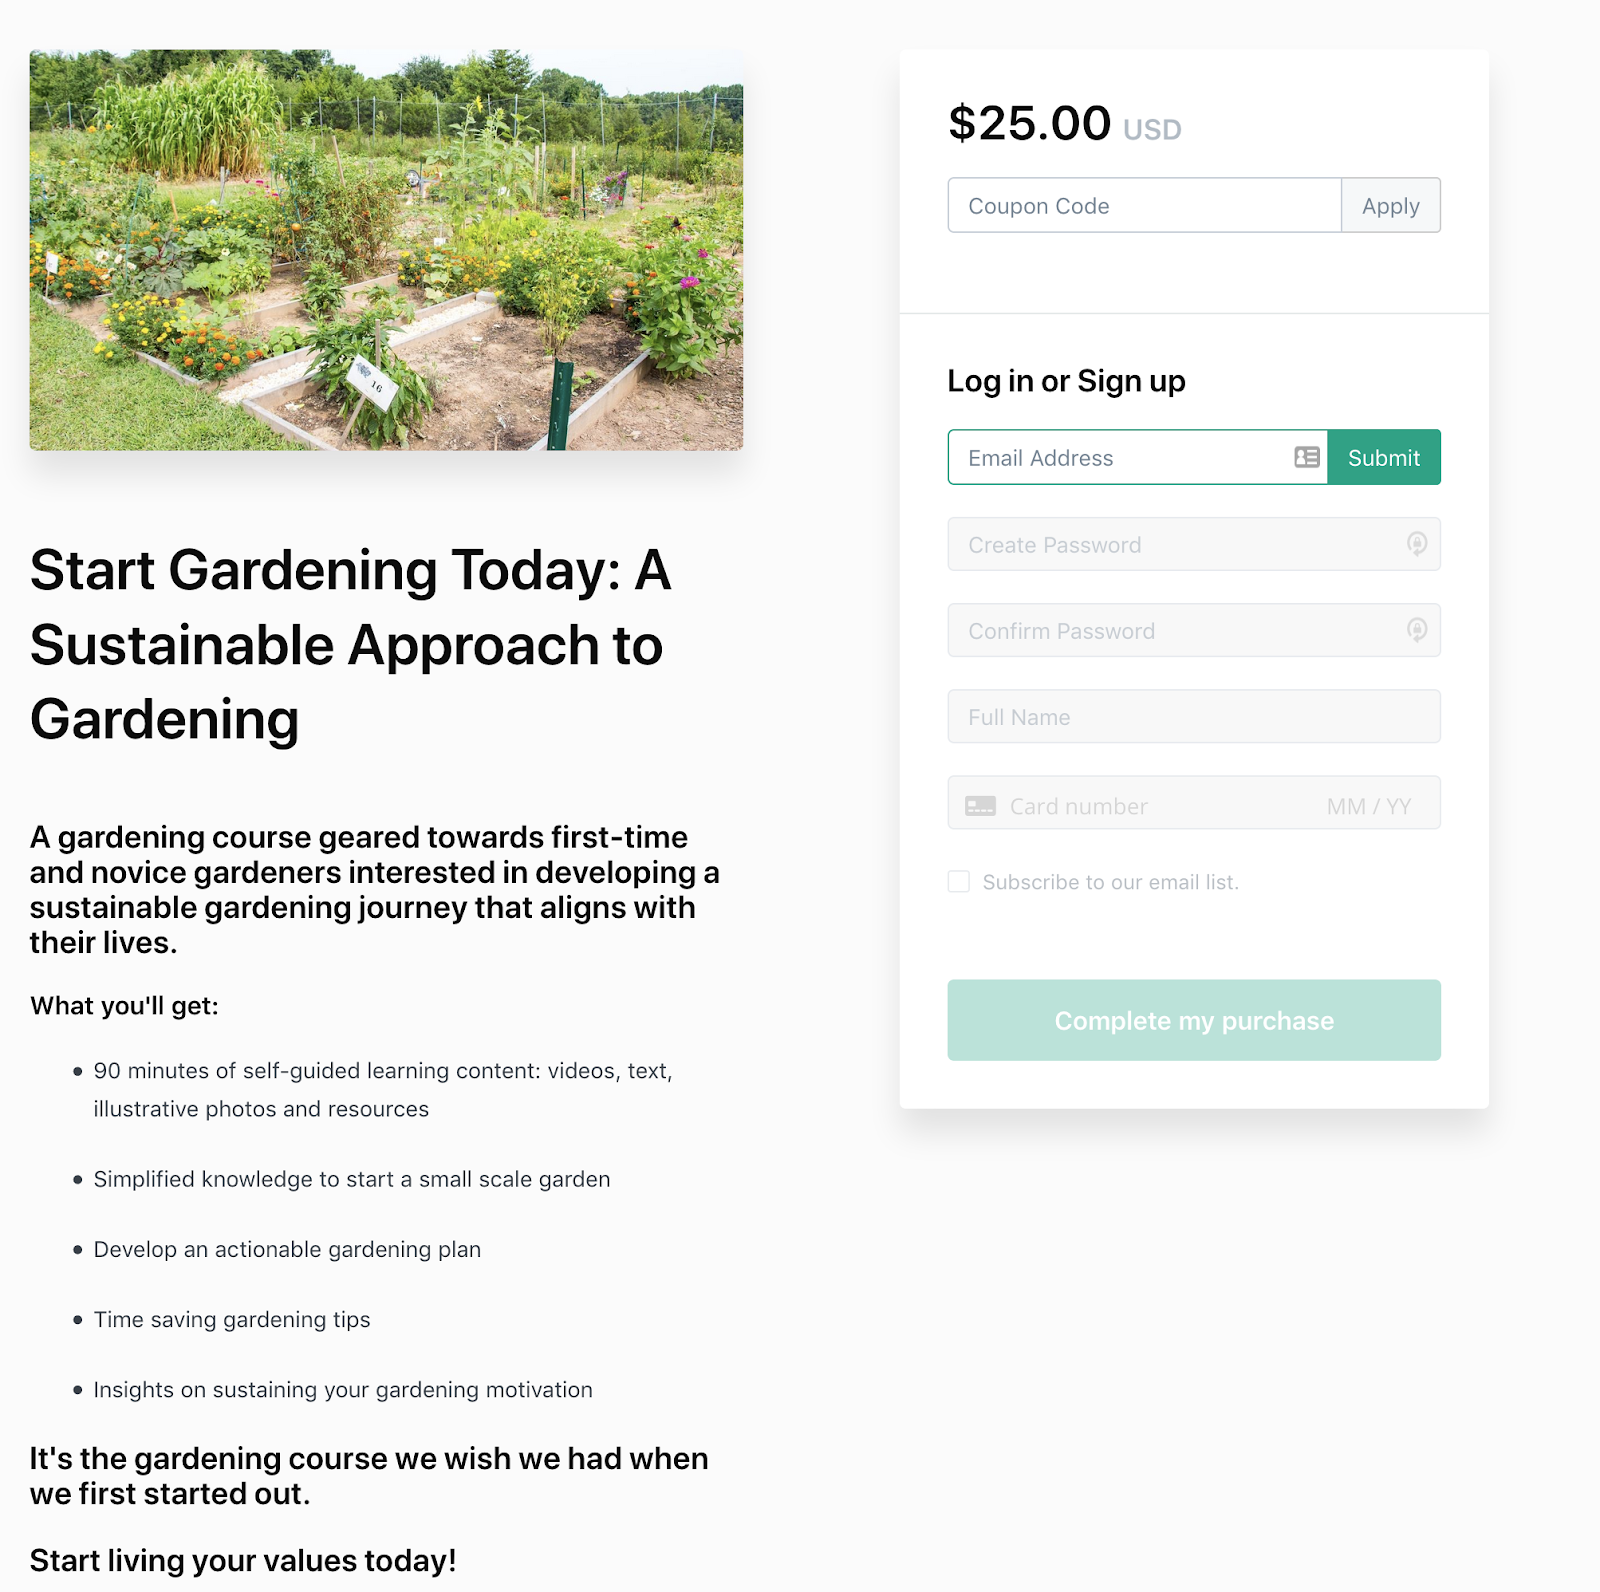 Screenshot of a modern sales page promoting a sustainable gardening course